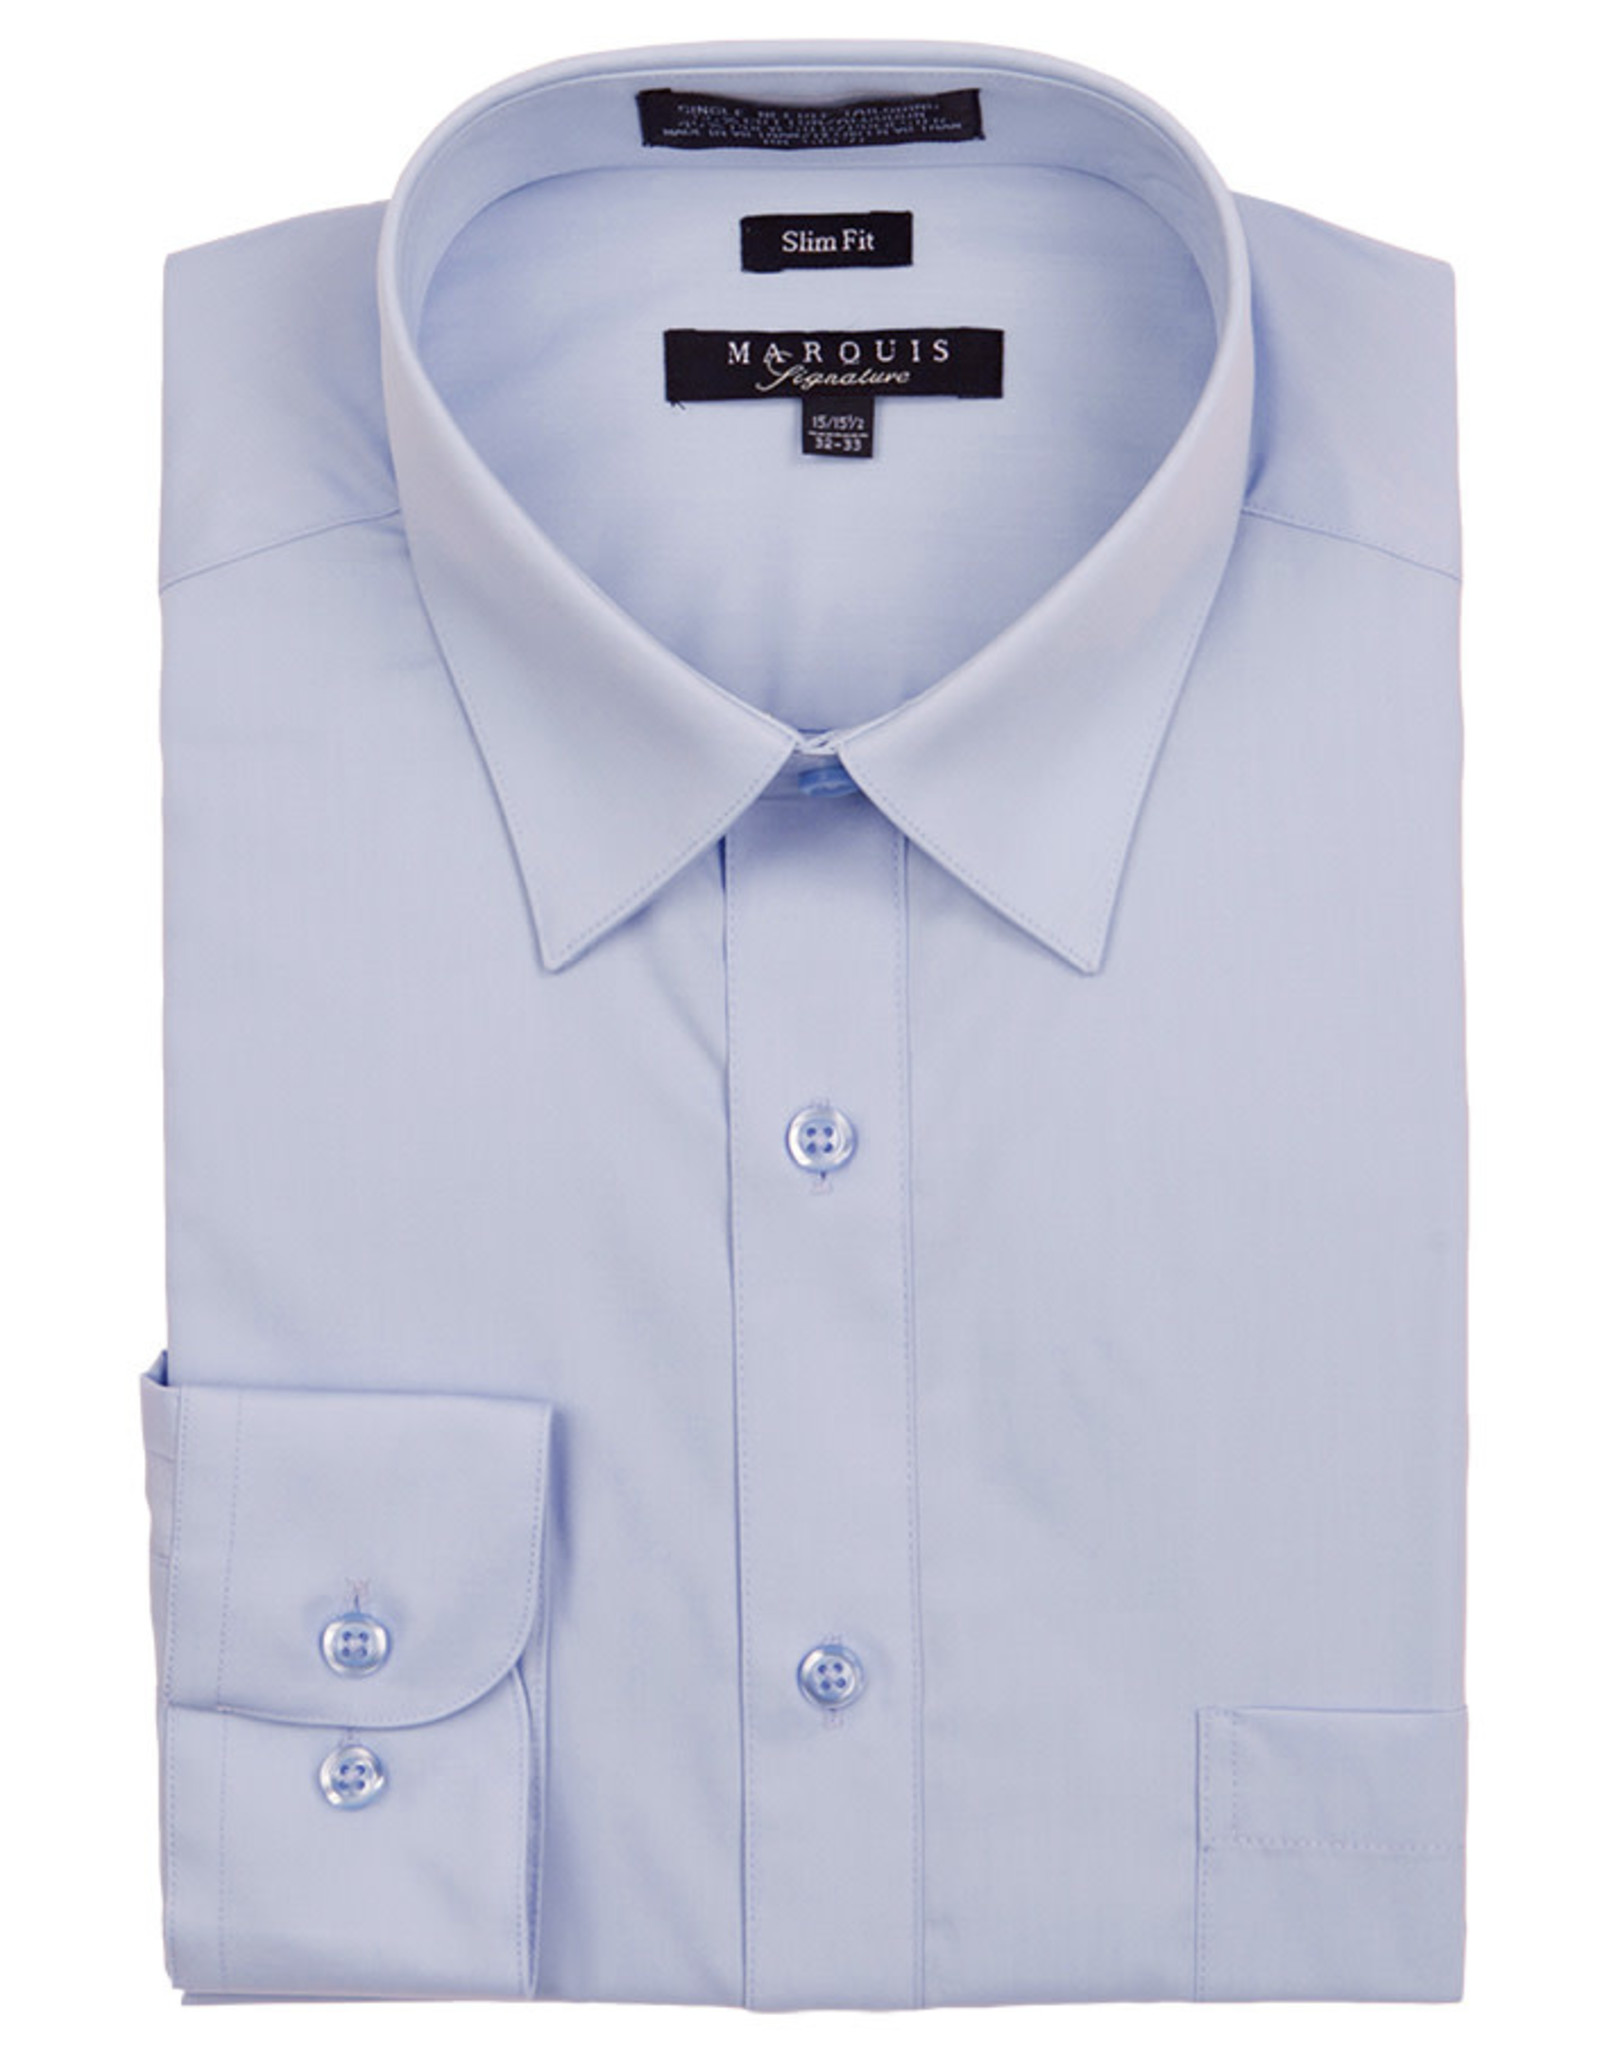 Marquis Dress Shirt MarQuis Slim Fit Light Blue